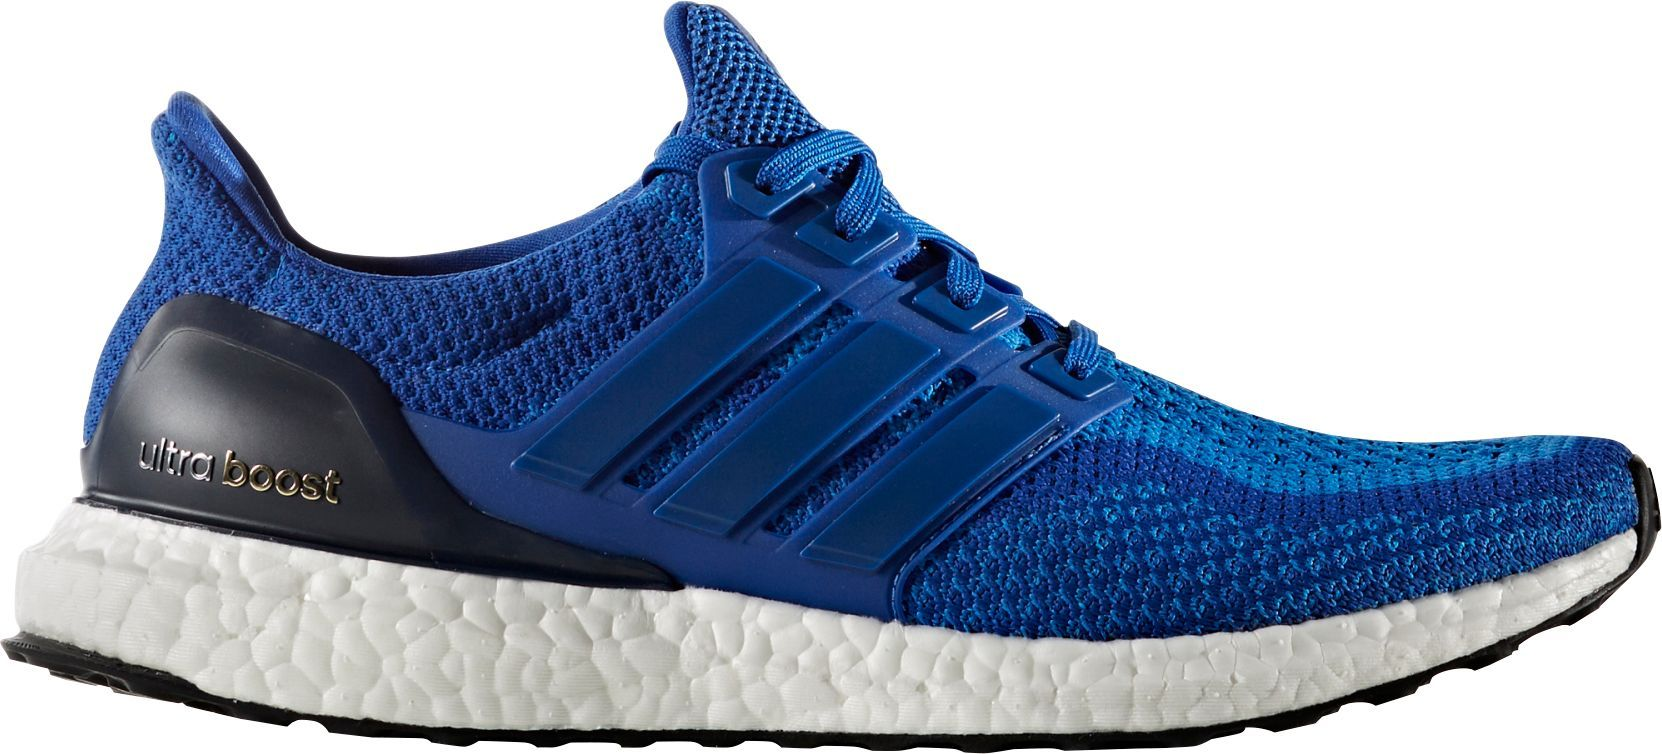 39d7b5d6b37 adidas Men s Ultraboost Running Shoes in 2019